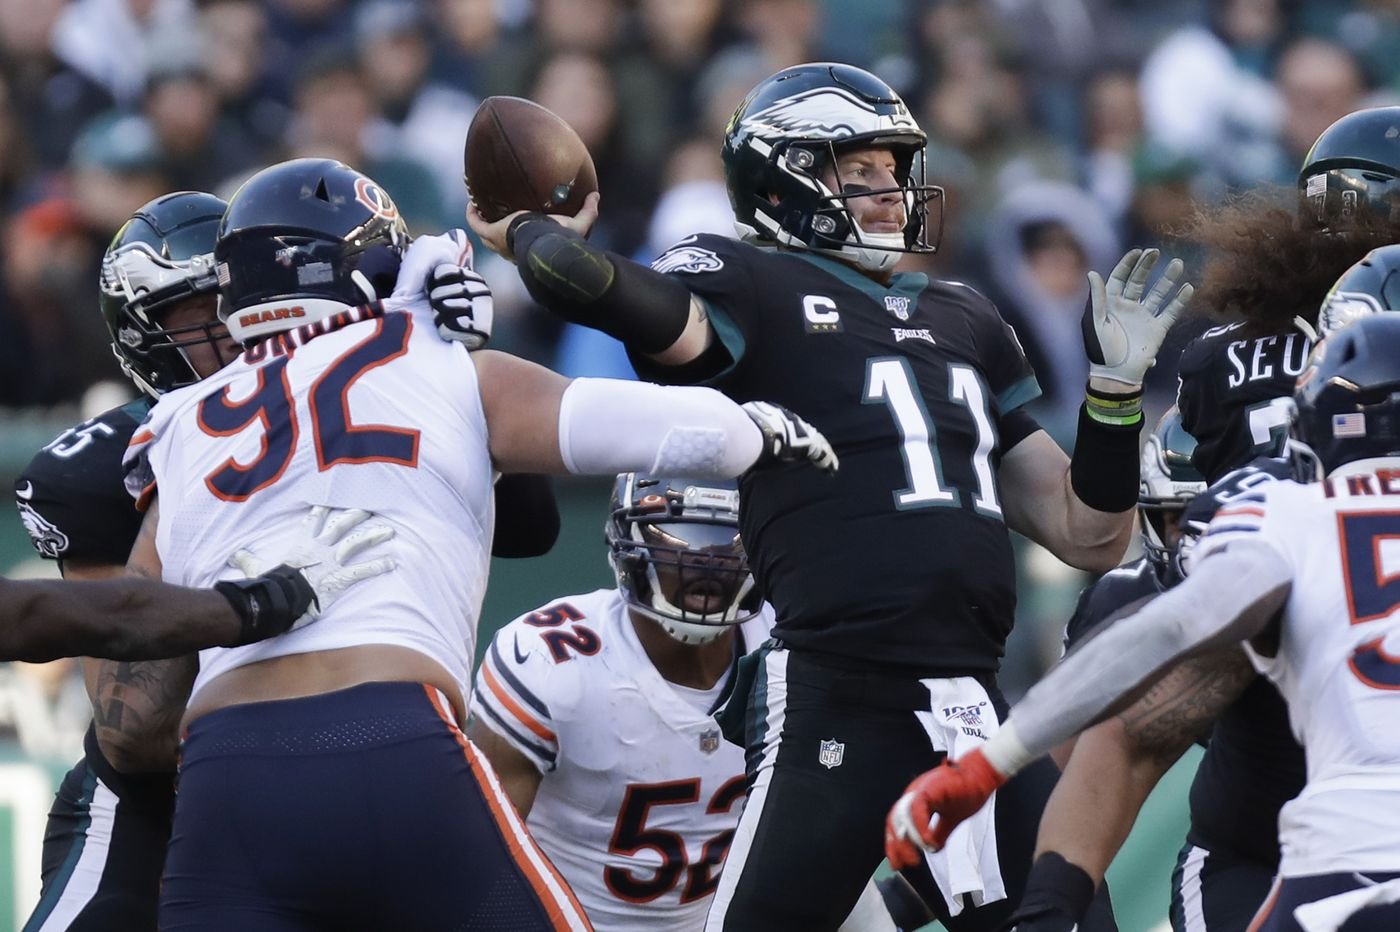 Carson Wentz made the big plays in the Eagles' win over the Bears. Nothing else matters. | Mike Sielski